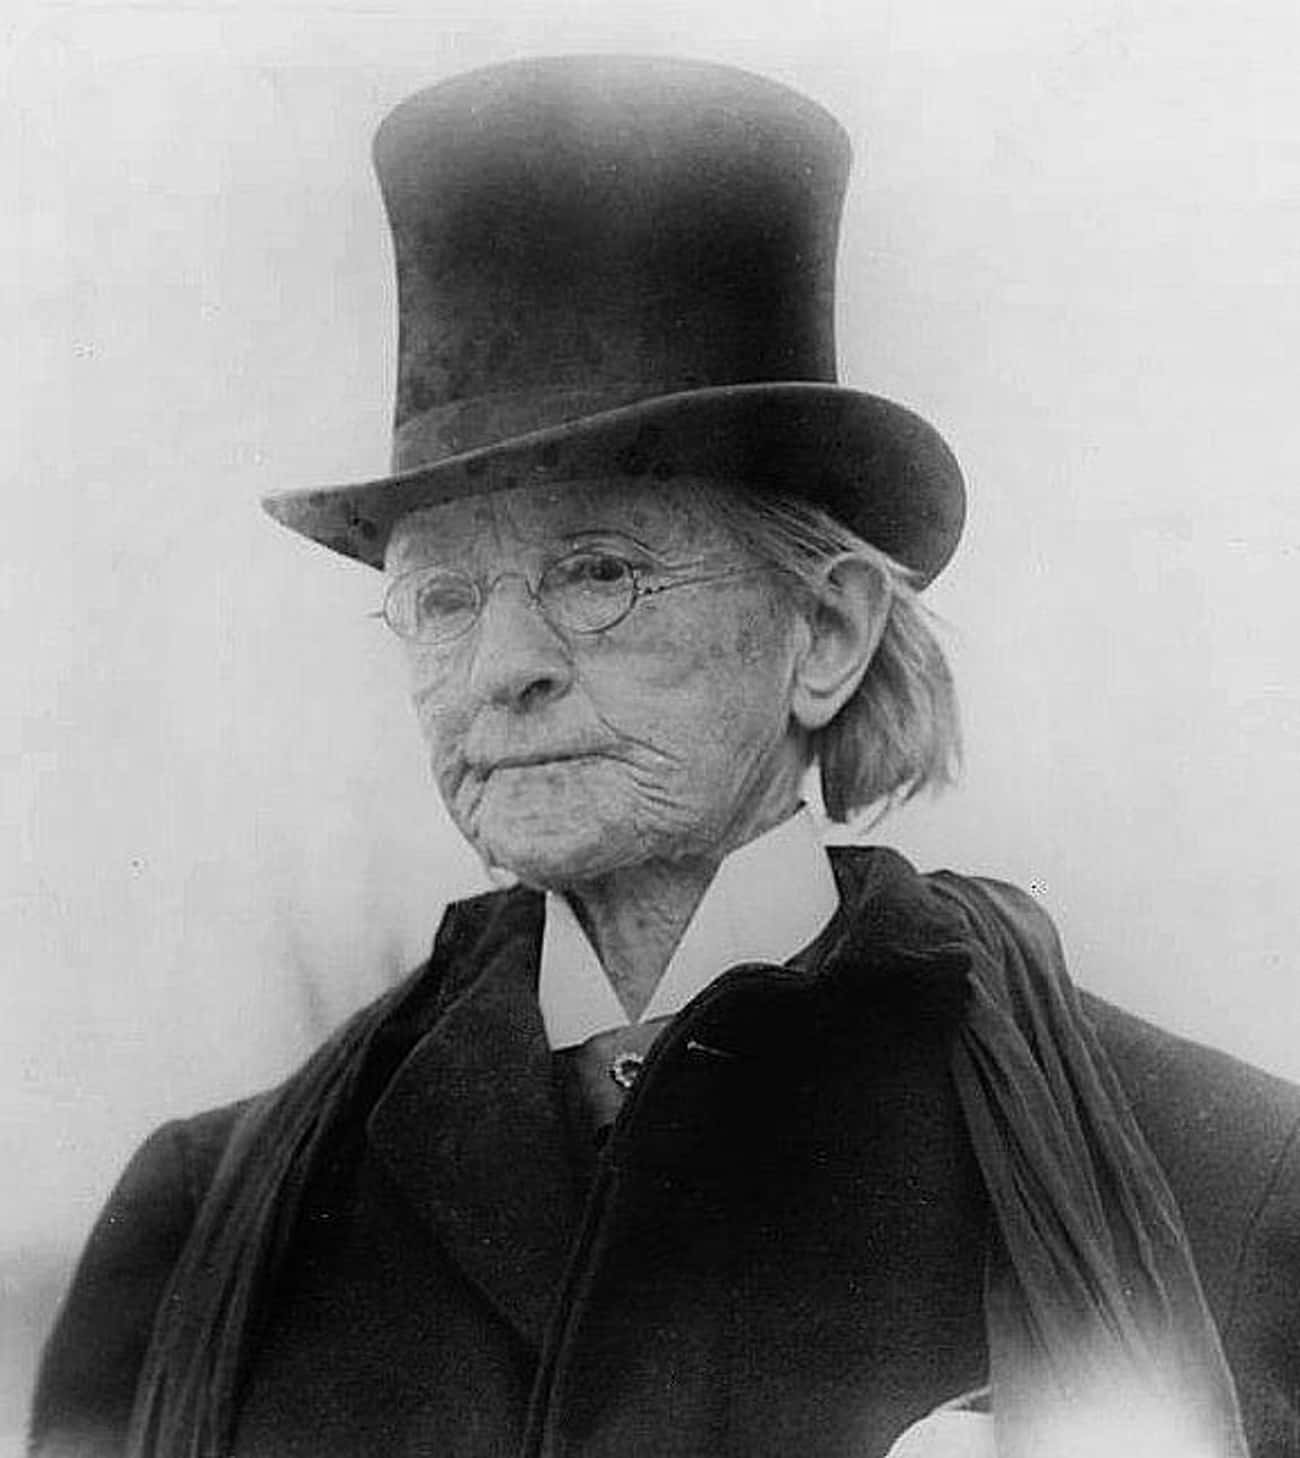 Dr. Mary Walker - Crossed Enemy Lines Alone to Provide Medical Assistance